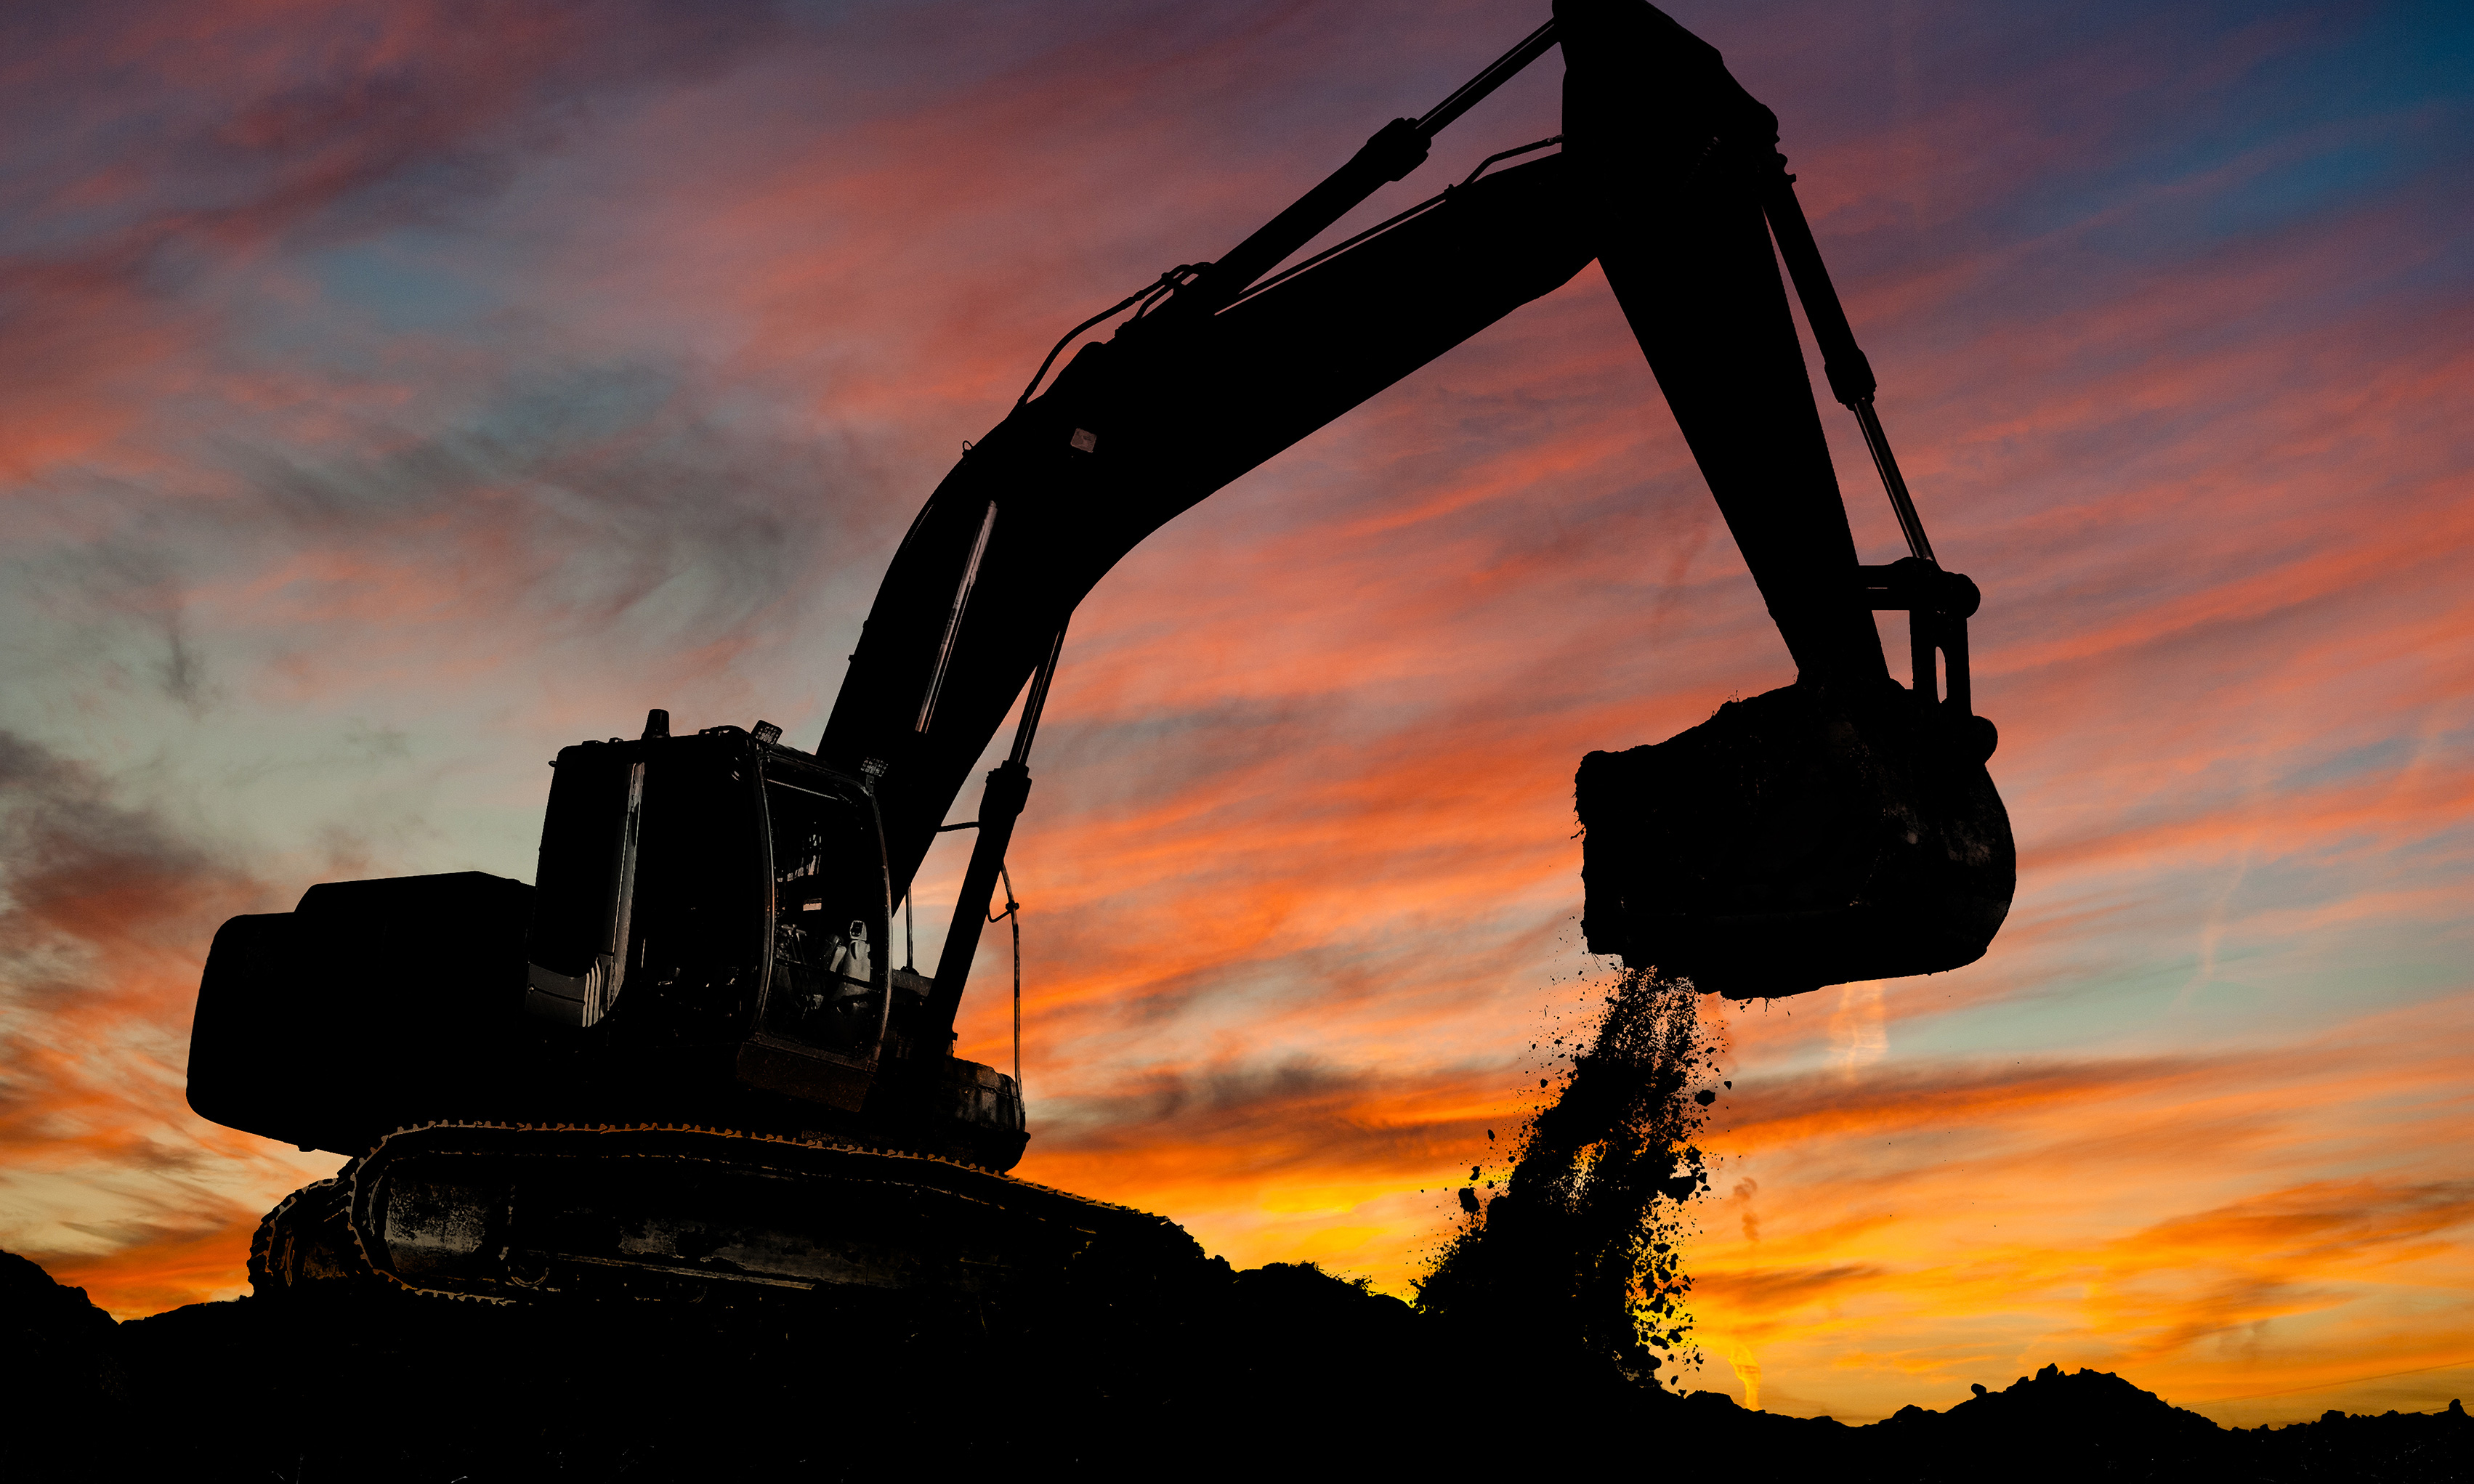 Front-end loader digging earth silhouetted against a sunset sky.